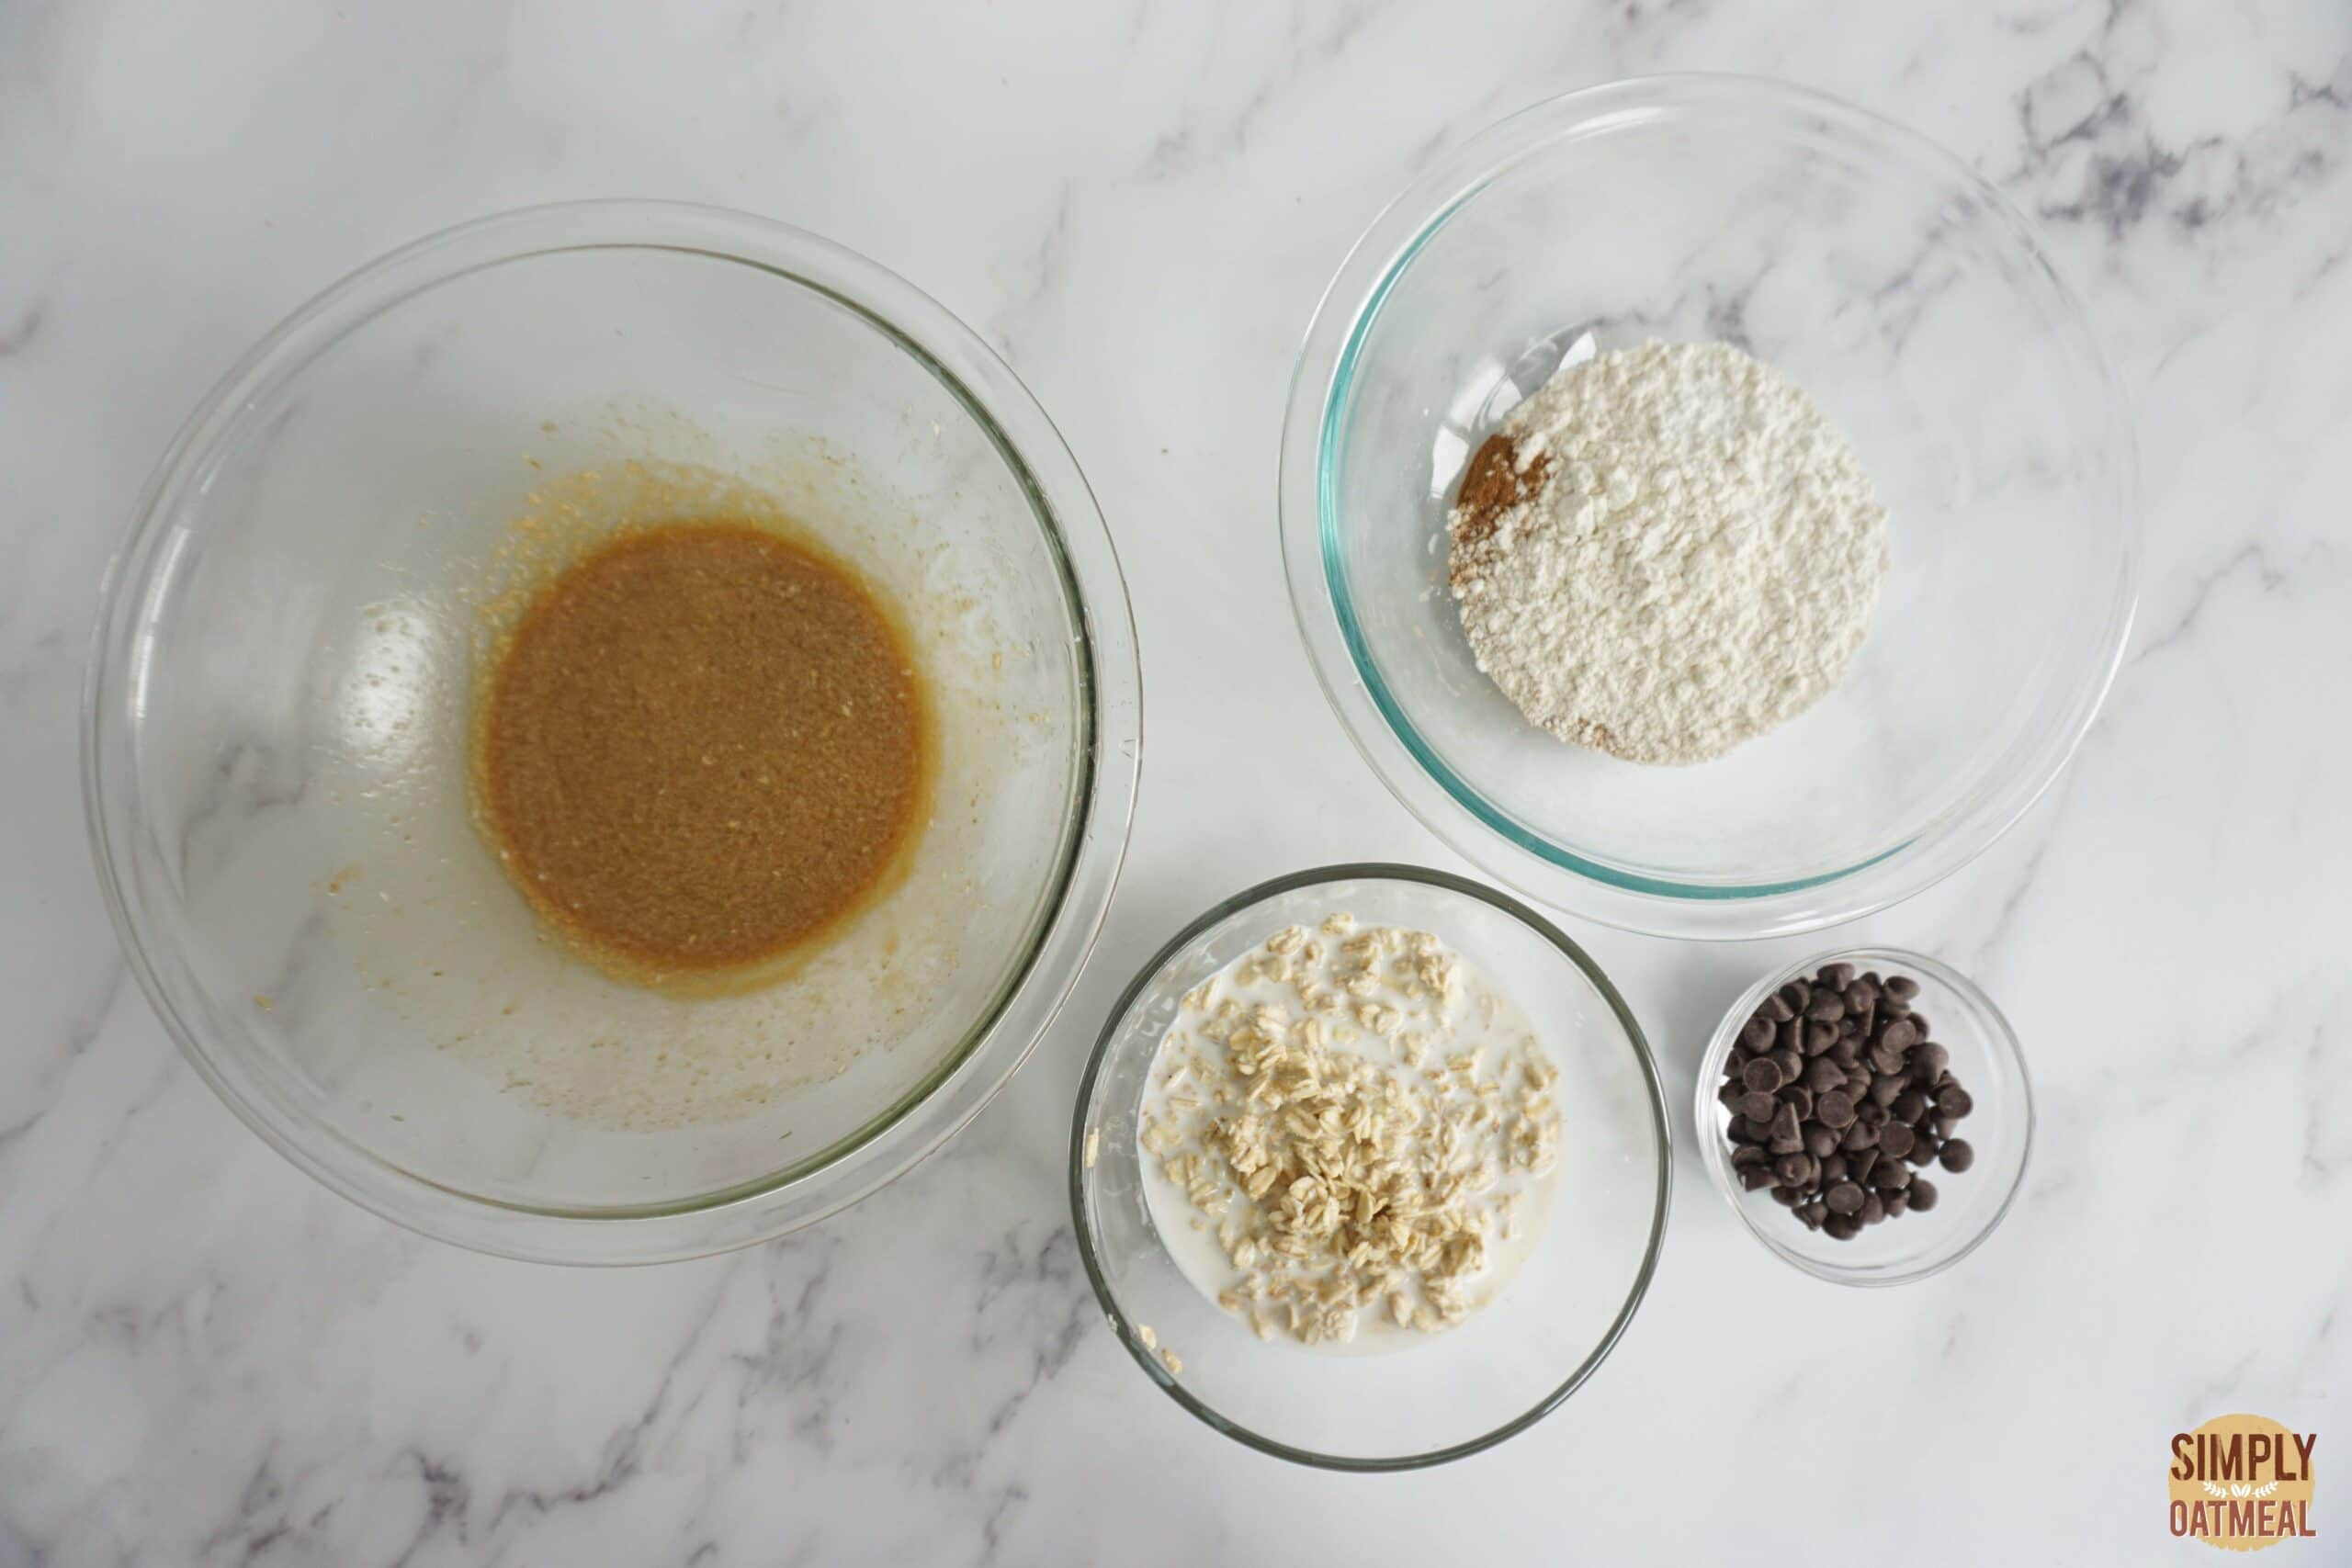 Wet and dry ingredients to make chocolate chip oatmeal muffins